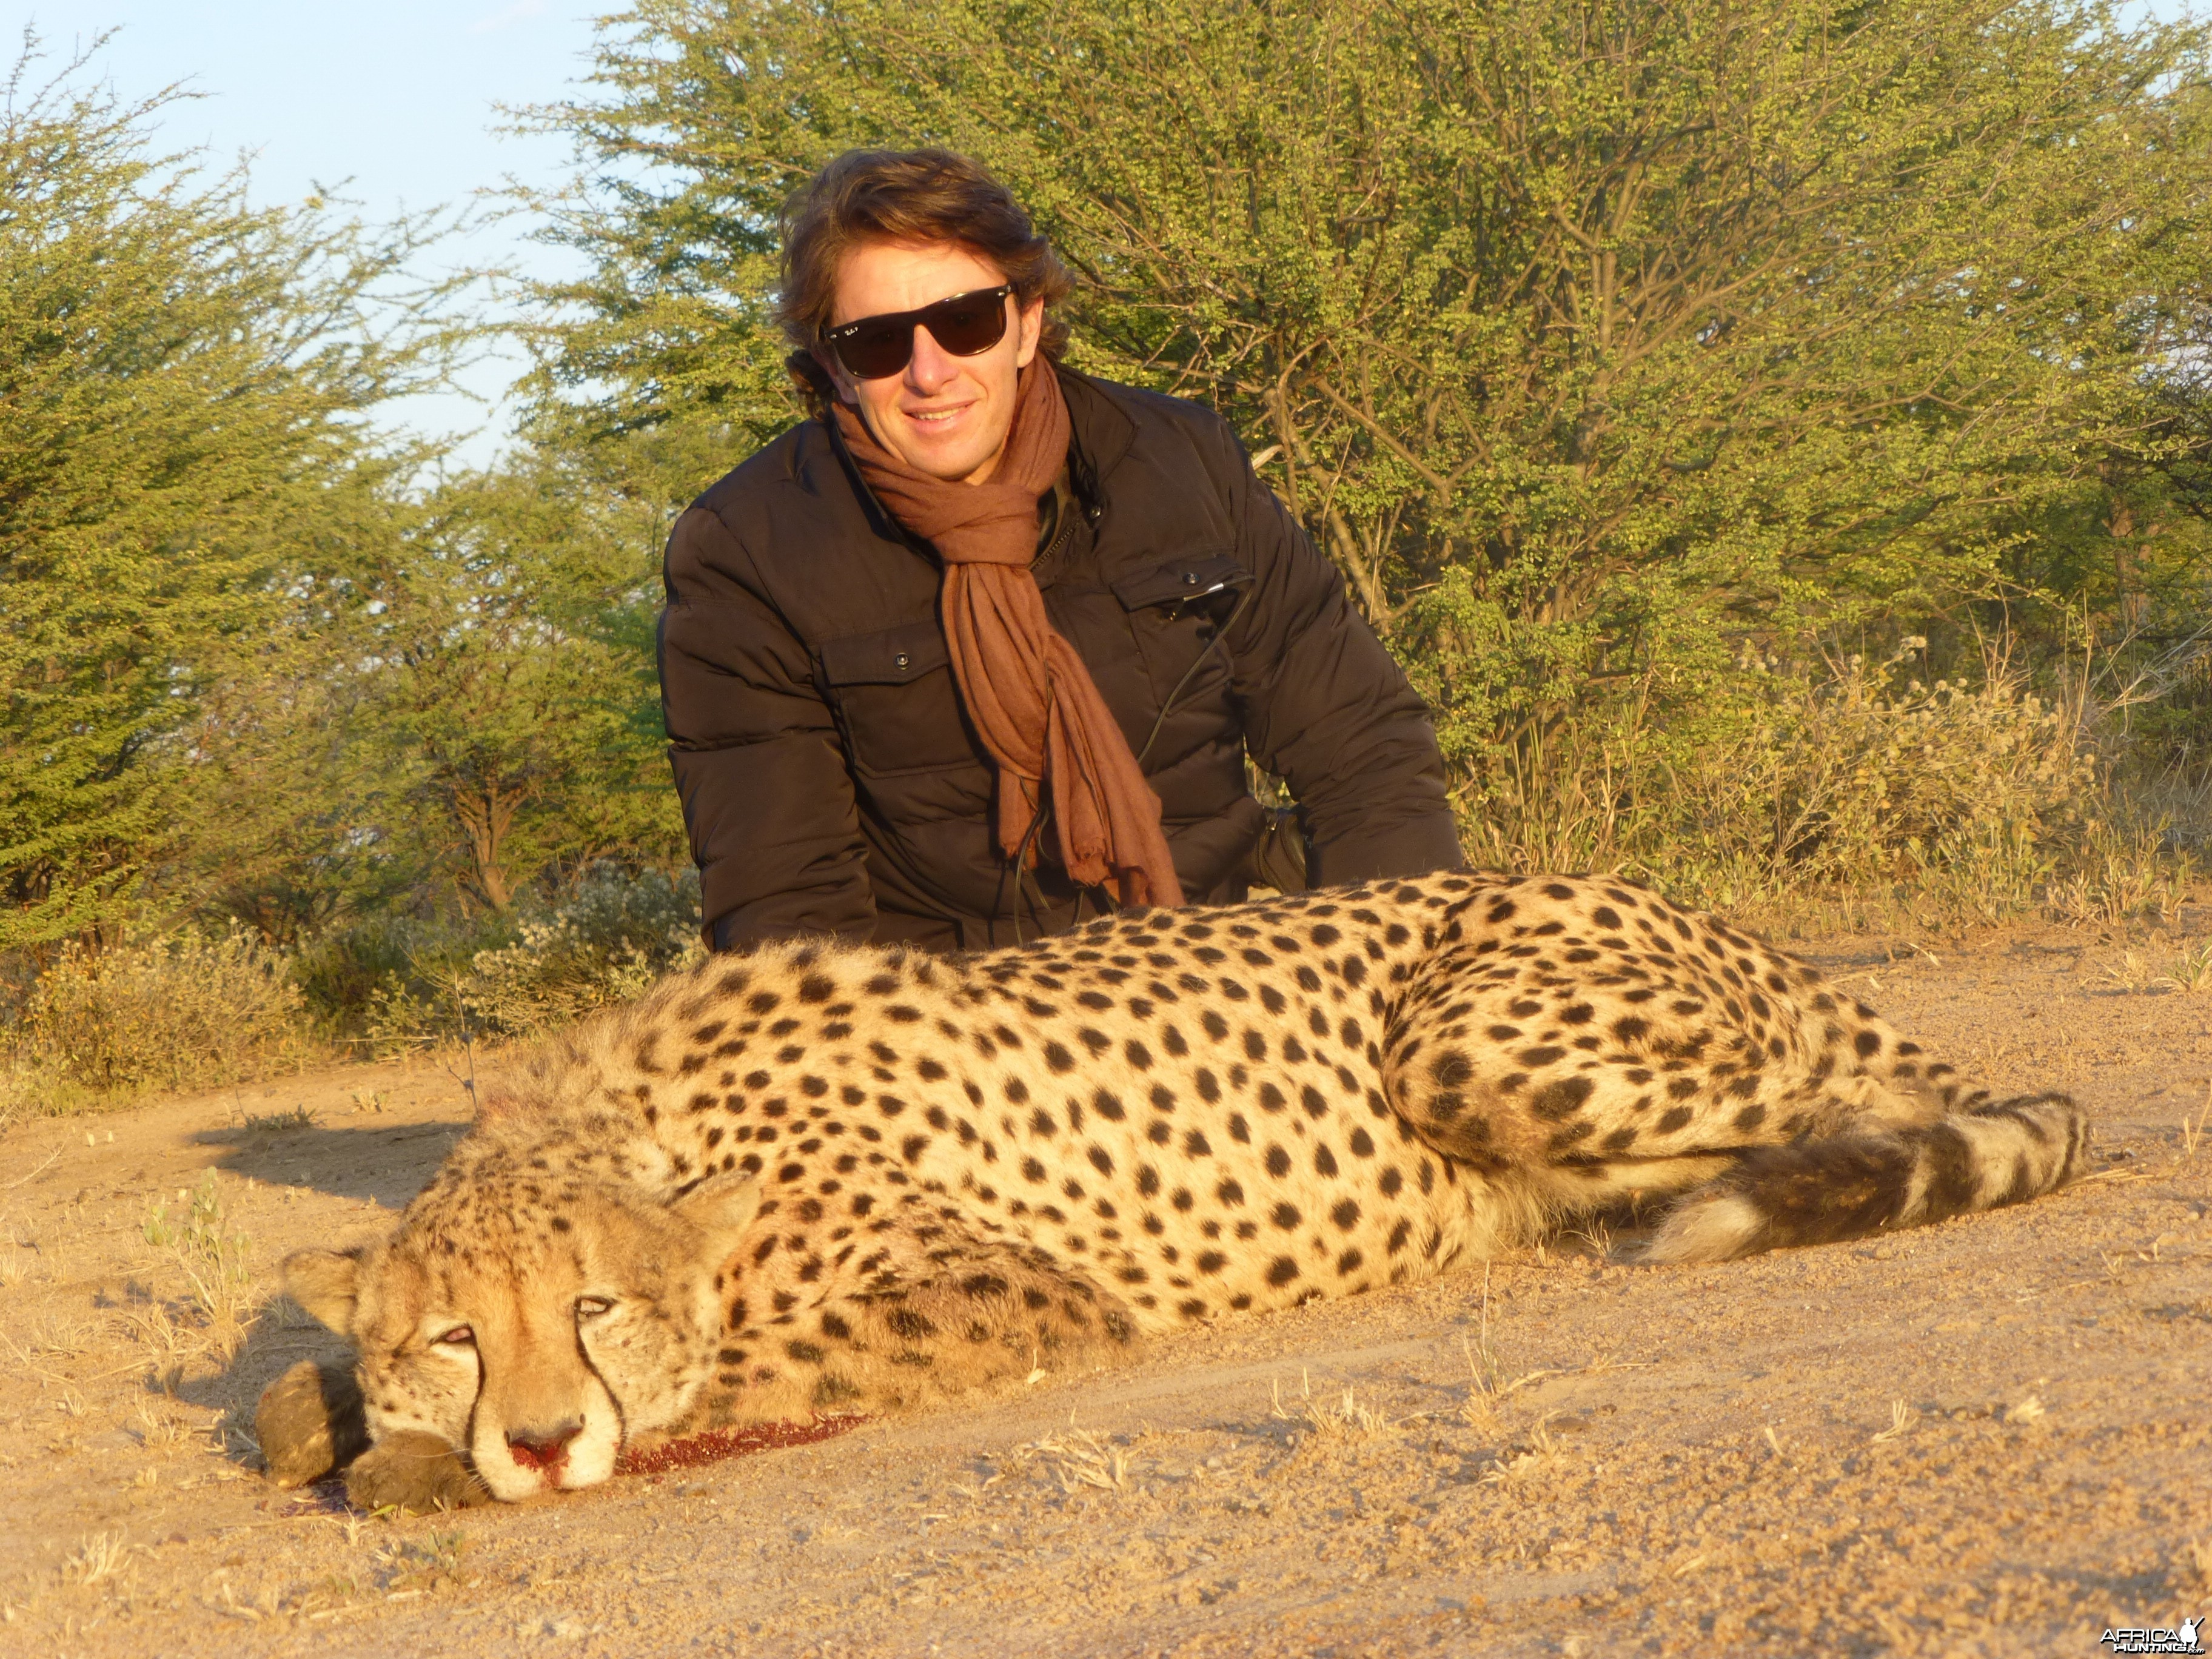 Cheetah hunted with Ozondjahe Hunting Safaris in Namibia